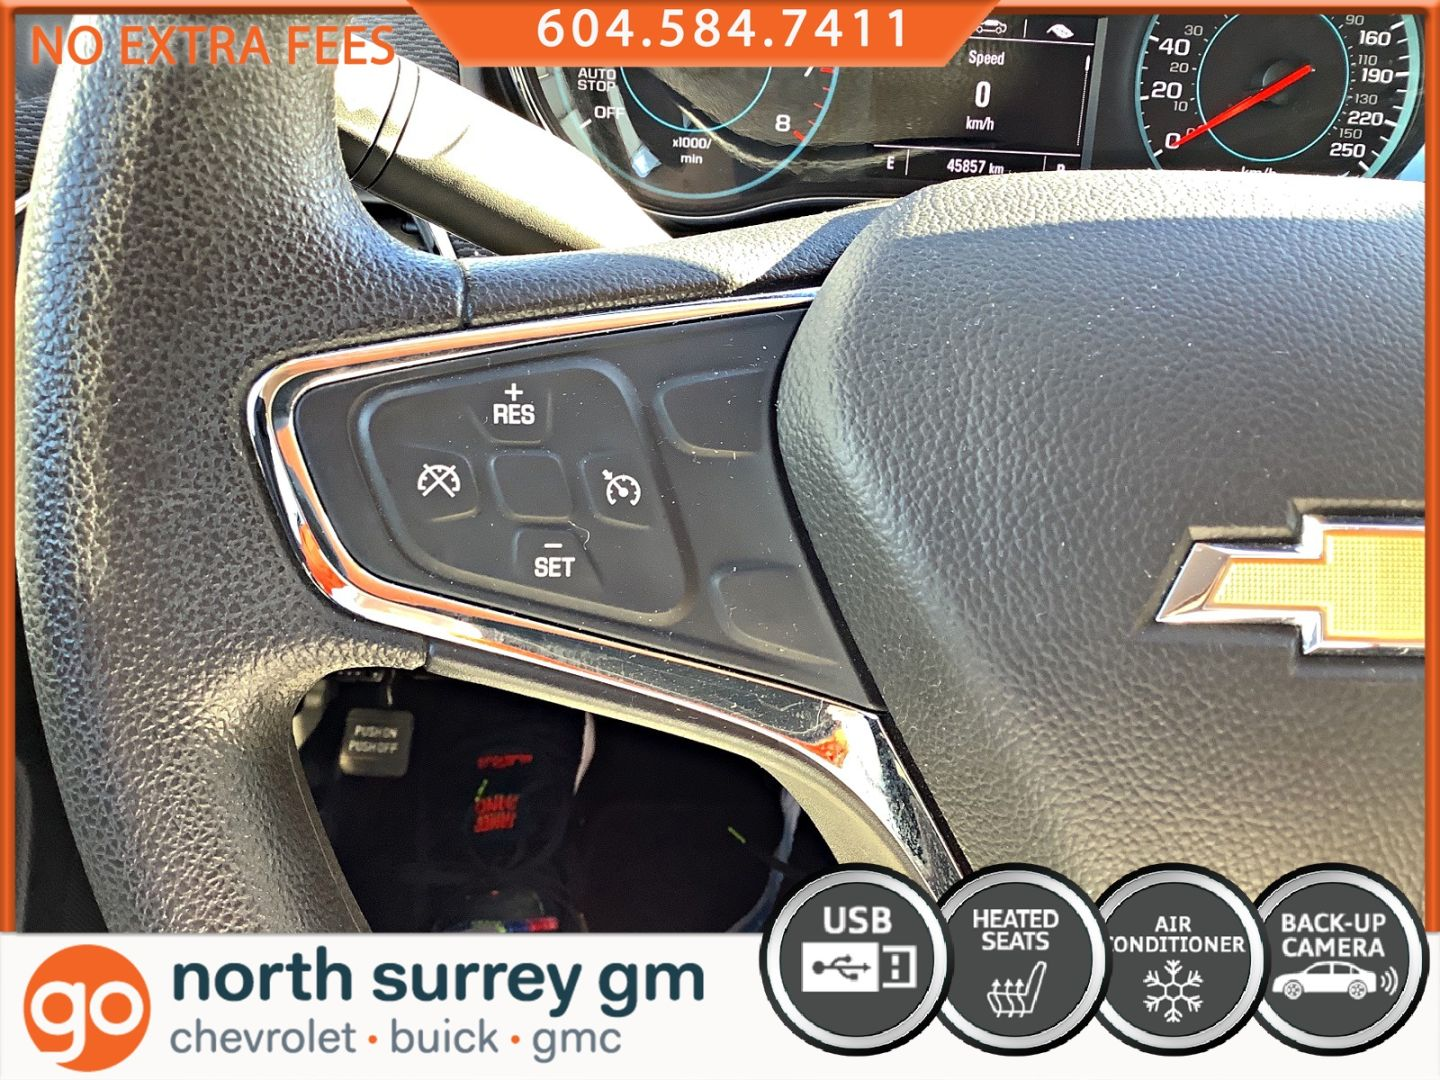 2018 Chevrolet Cruze LT for sale in Surrey, British Columbia